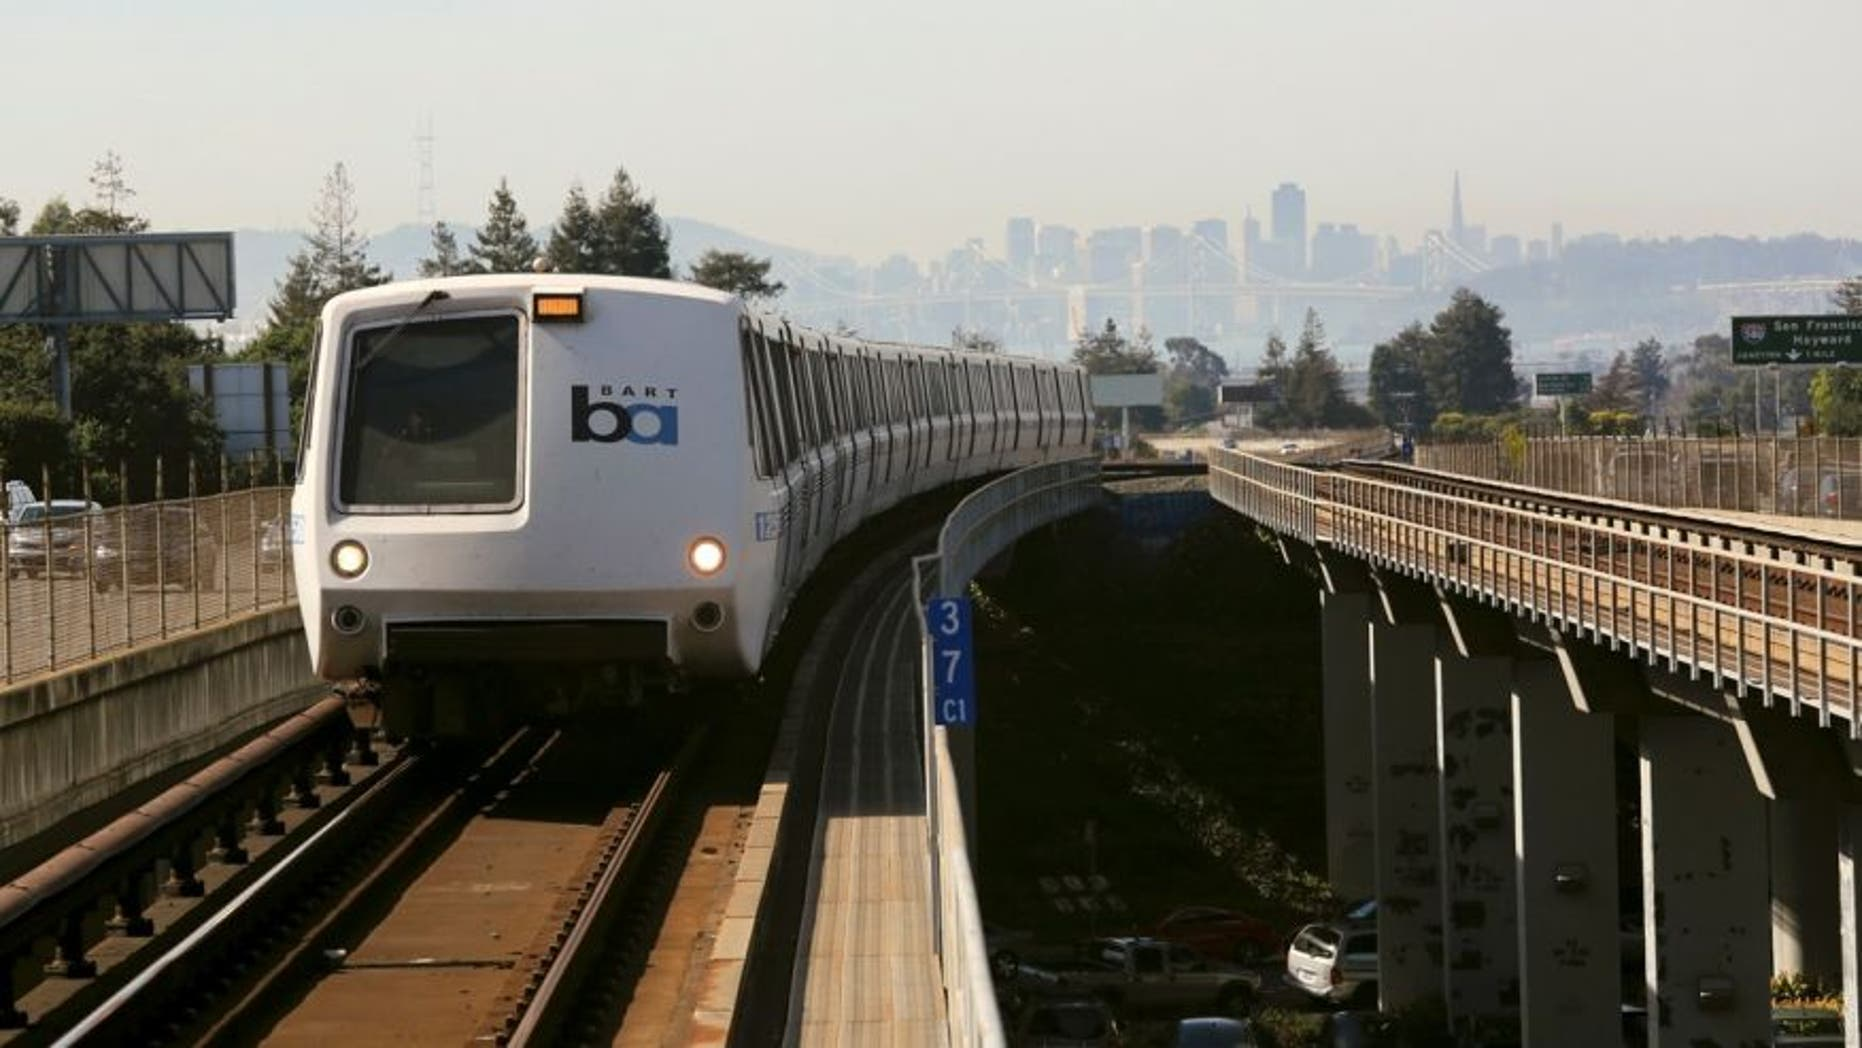 A Bay Area Rapid Transit (BART) train enters the platform area at the Rockridge station in Oakland, California February 12, 2015.  (REUTERS/Robert Galbraith)